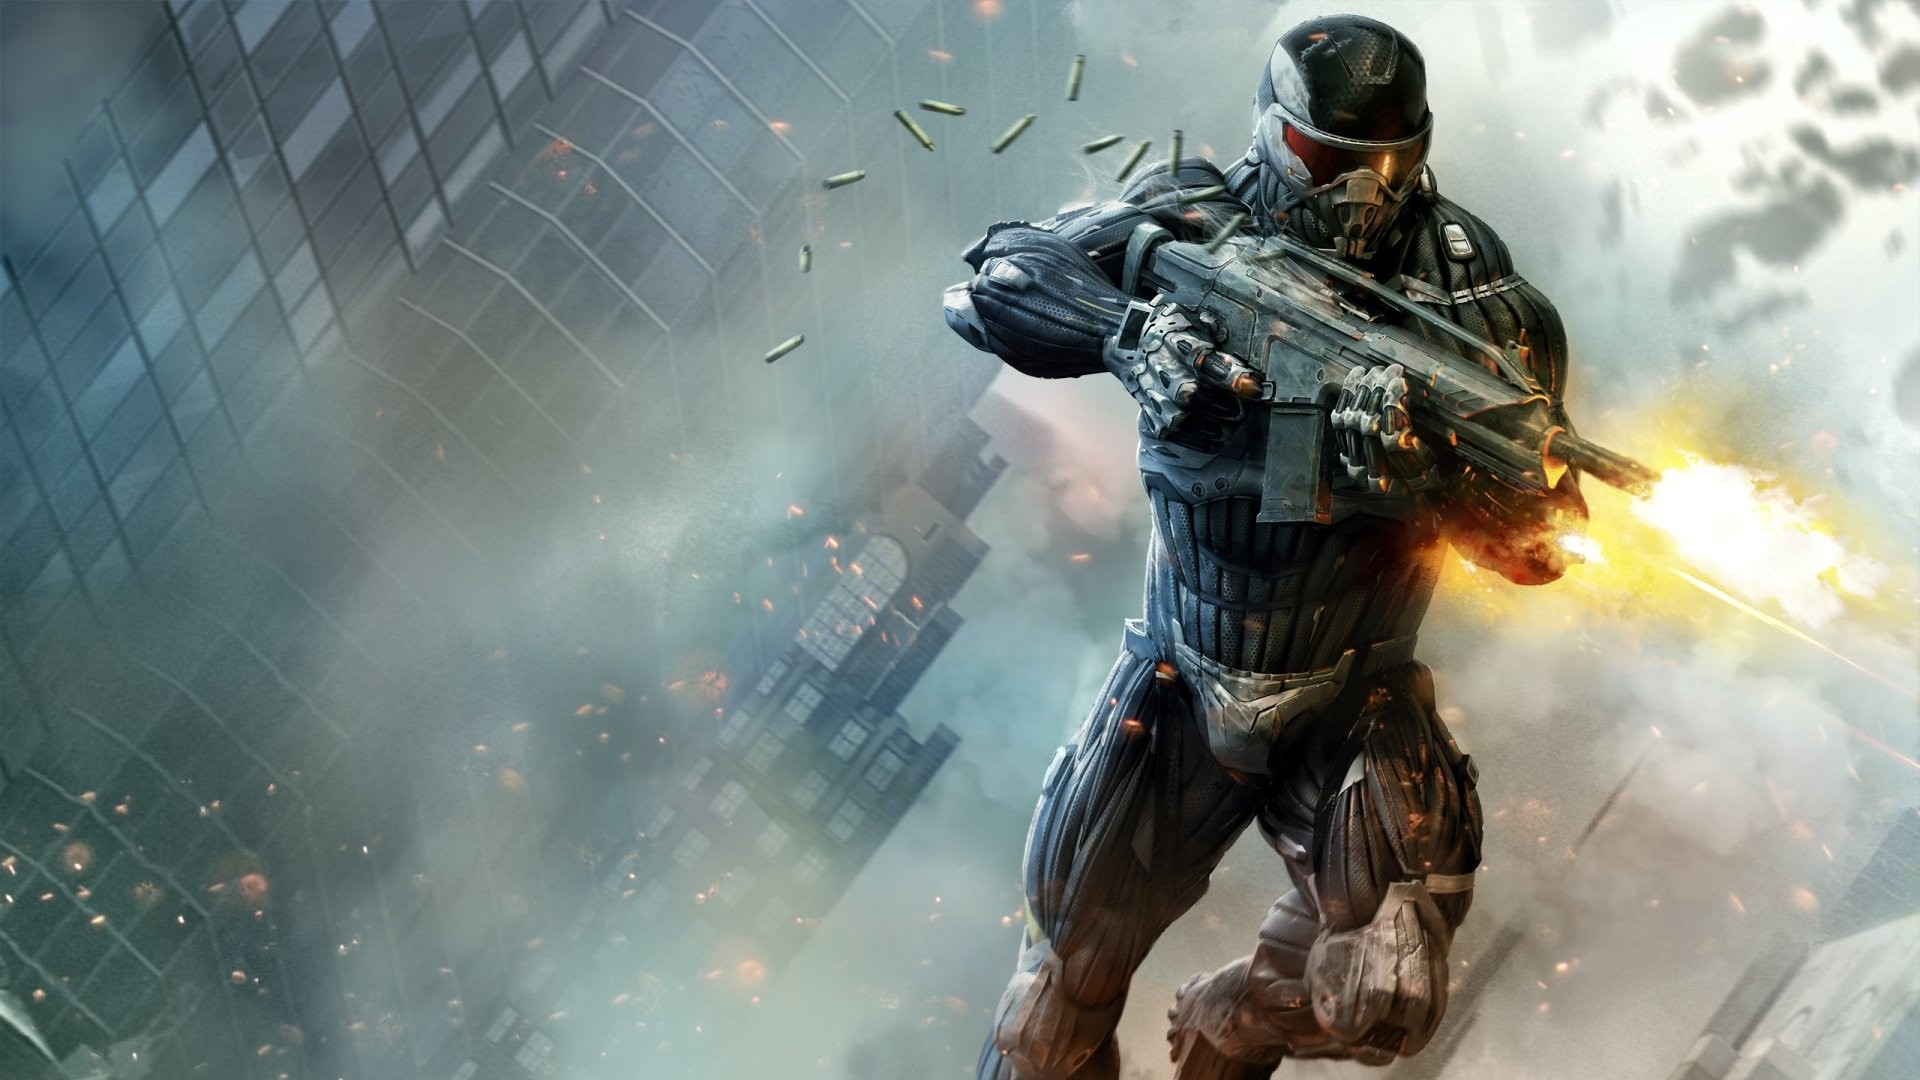 Download-crysis-gun-shooting-city-sleeves-alcatraz-for-Ipad-«-Kuff-Games-wallpaper-wp3604989